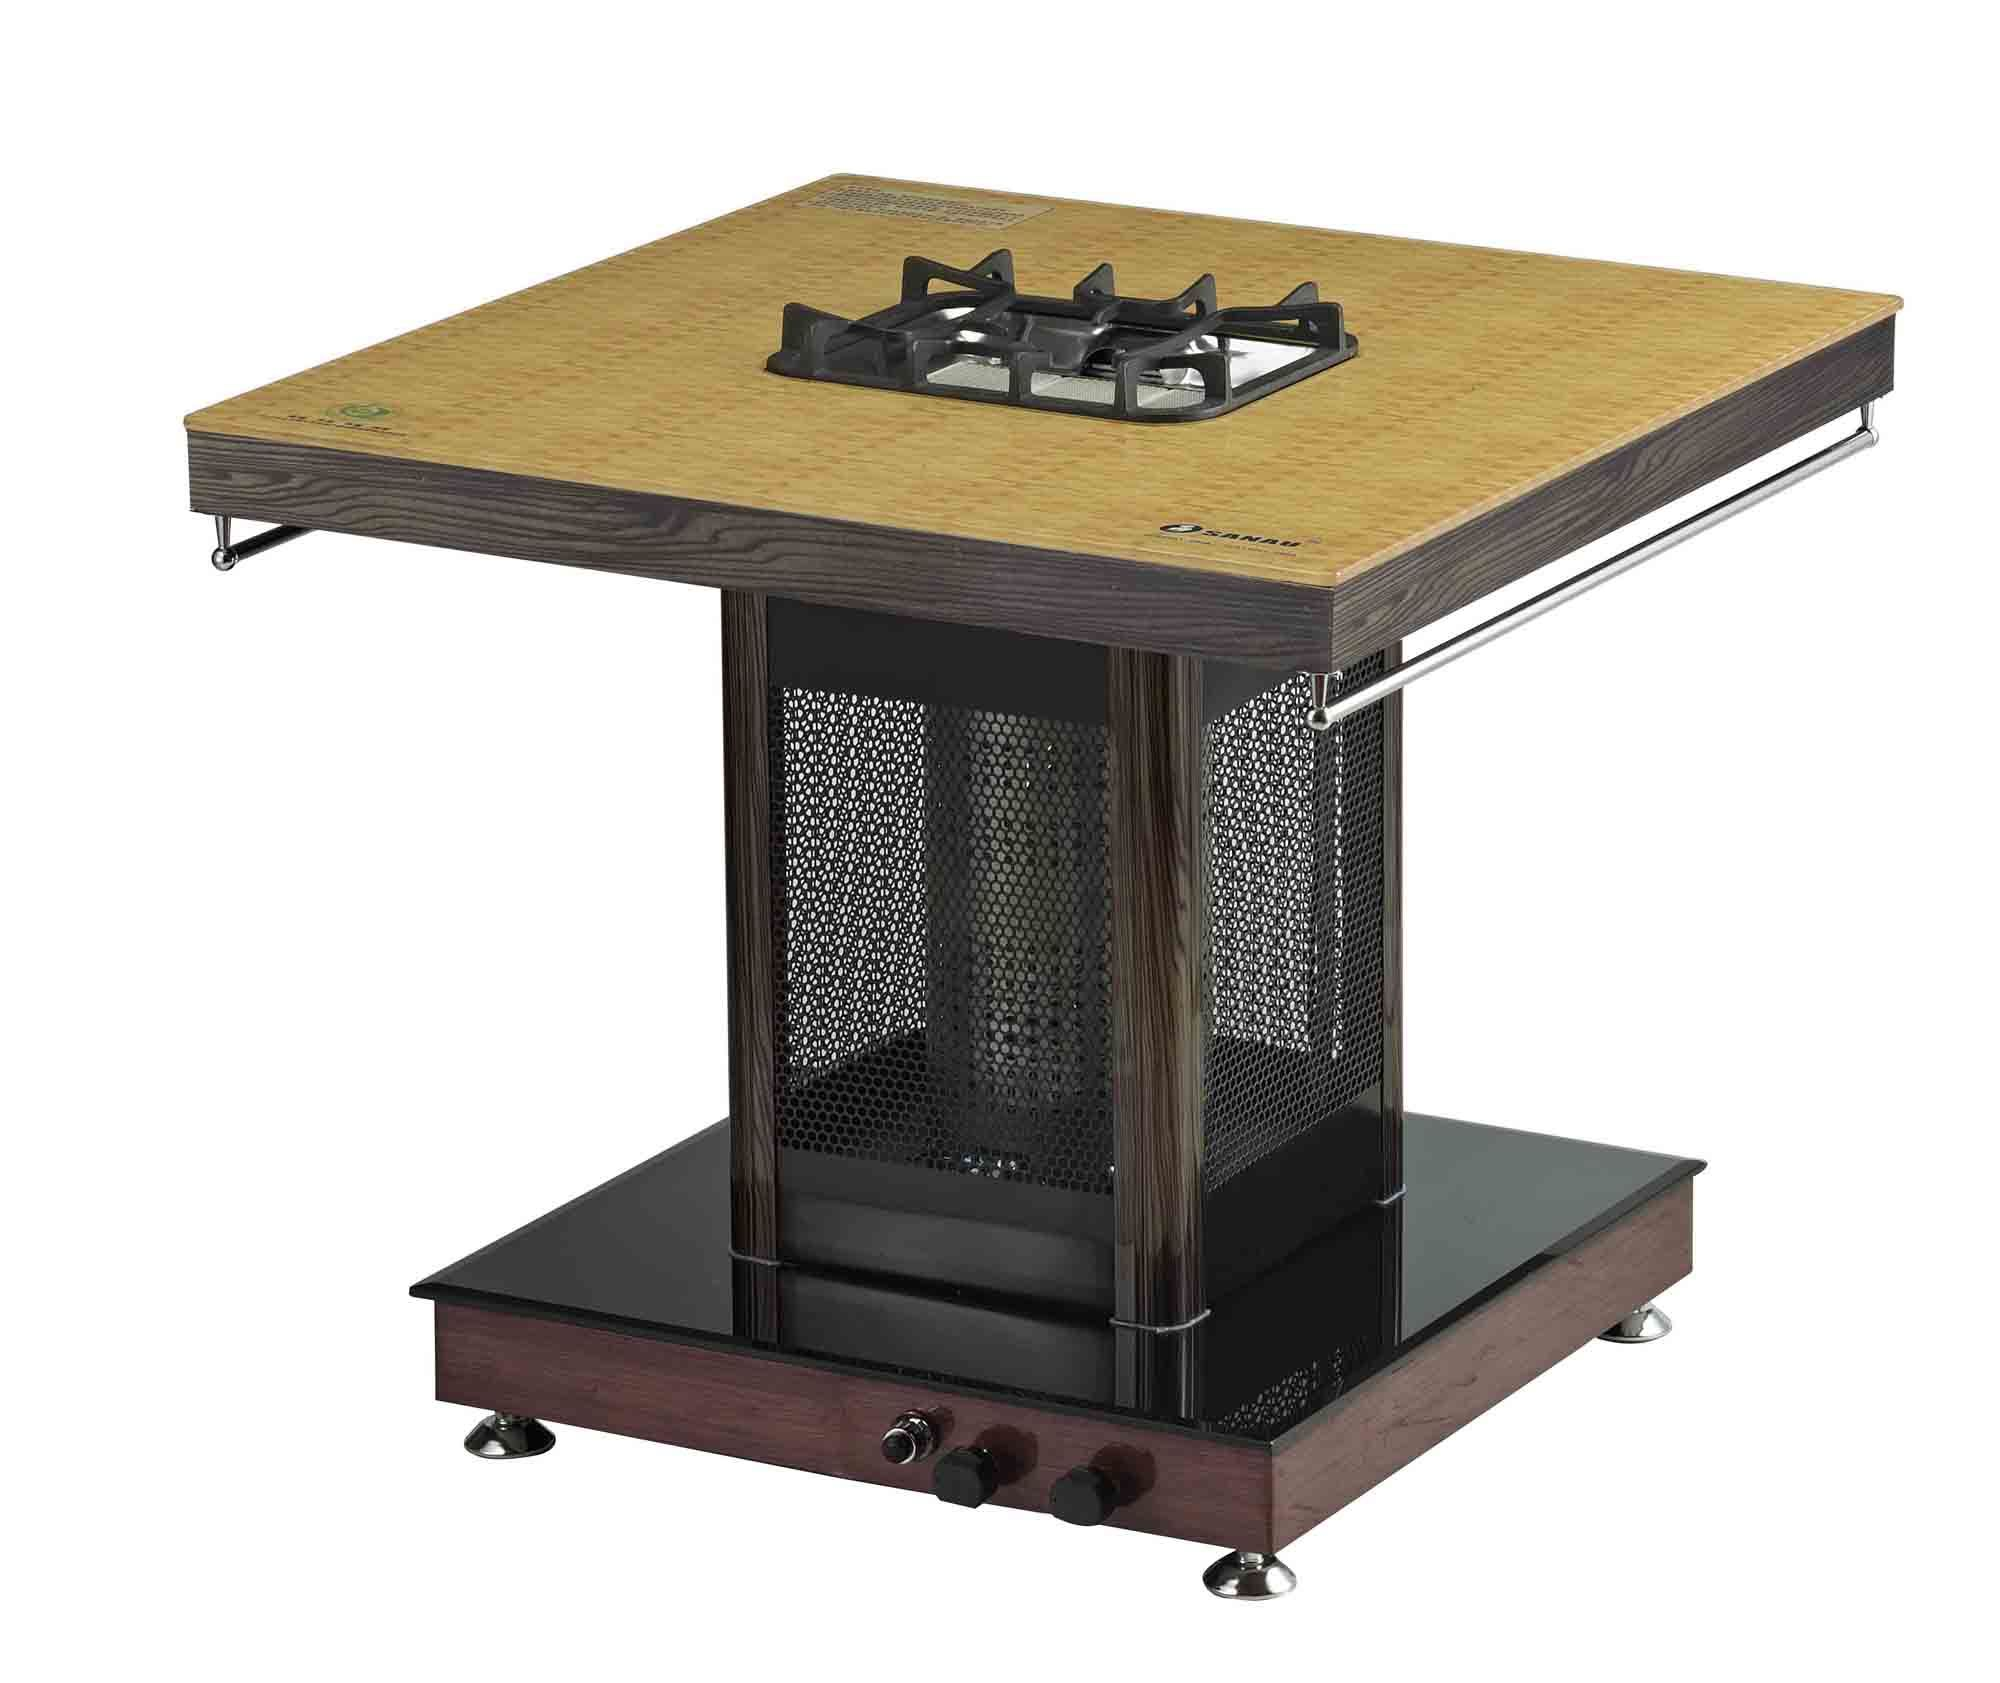 Ceramic Gas Grill with Gas Foot Heater and Stand Table